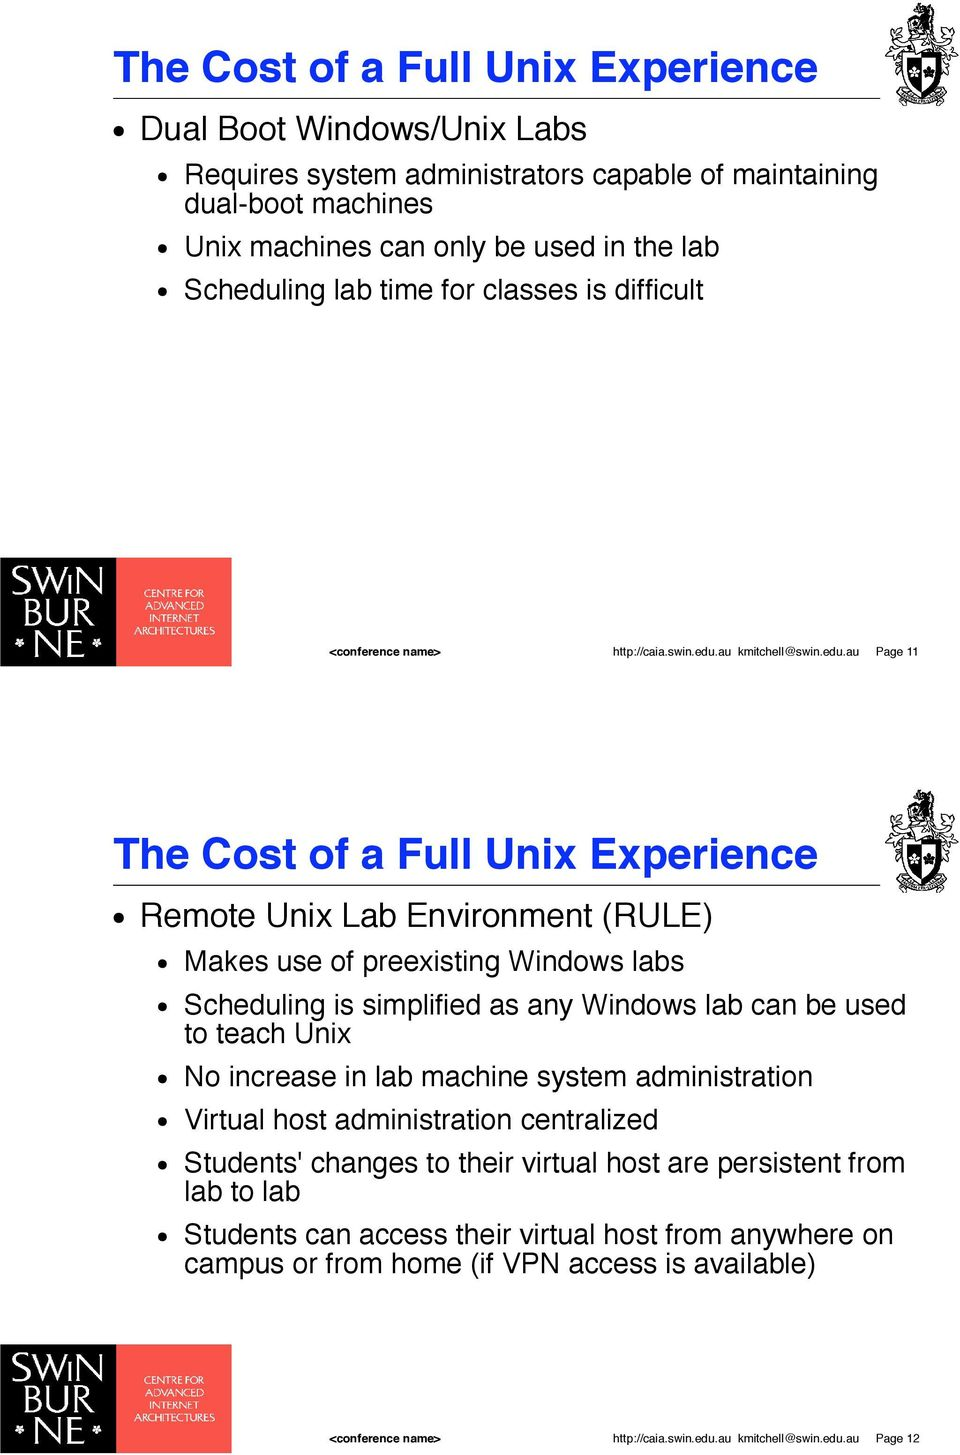 Makes use of preexisting Windows labs! Scheduling is simplified as any Windows lab can be used to teach Unix! No increase in lab machine system administration!